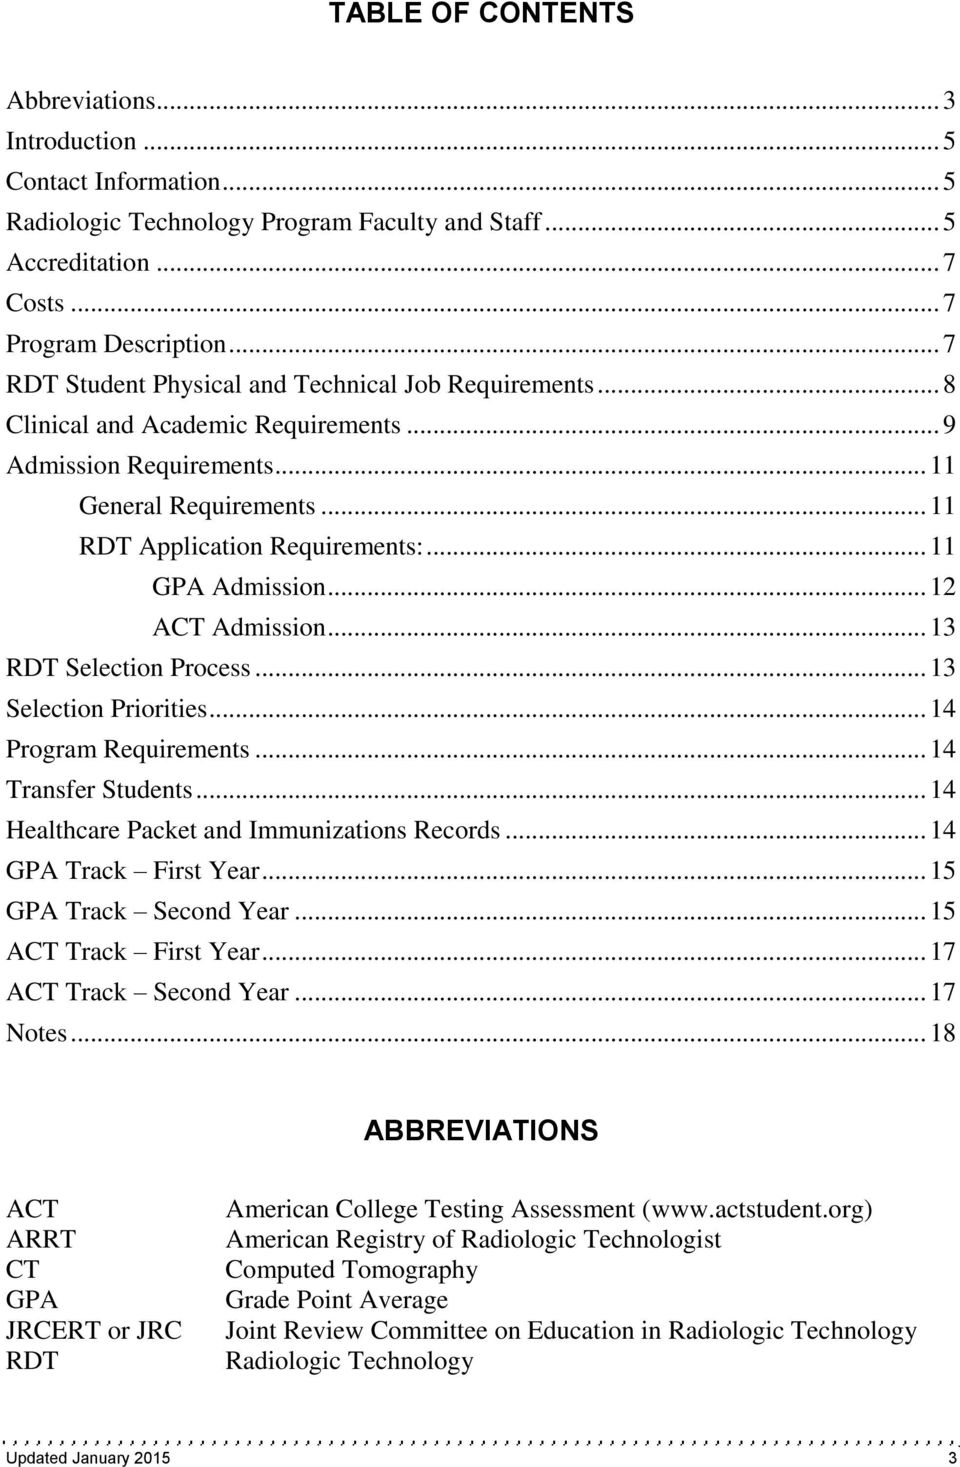 .. 11 GPA Admission... 12 ACT Admission... 13 RDT Selection Process... 13 Selection Priorities... 14 Program Requirements... 14 Transfer Students... 14 Healthcare Packet and Immunizations Records.